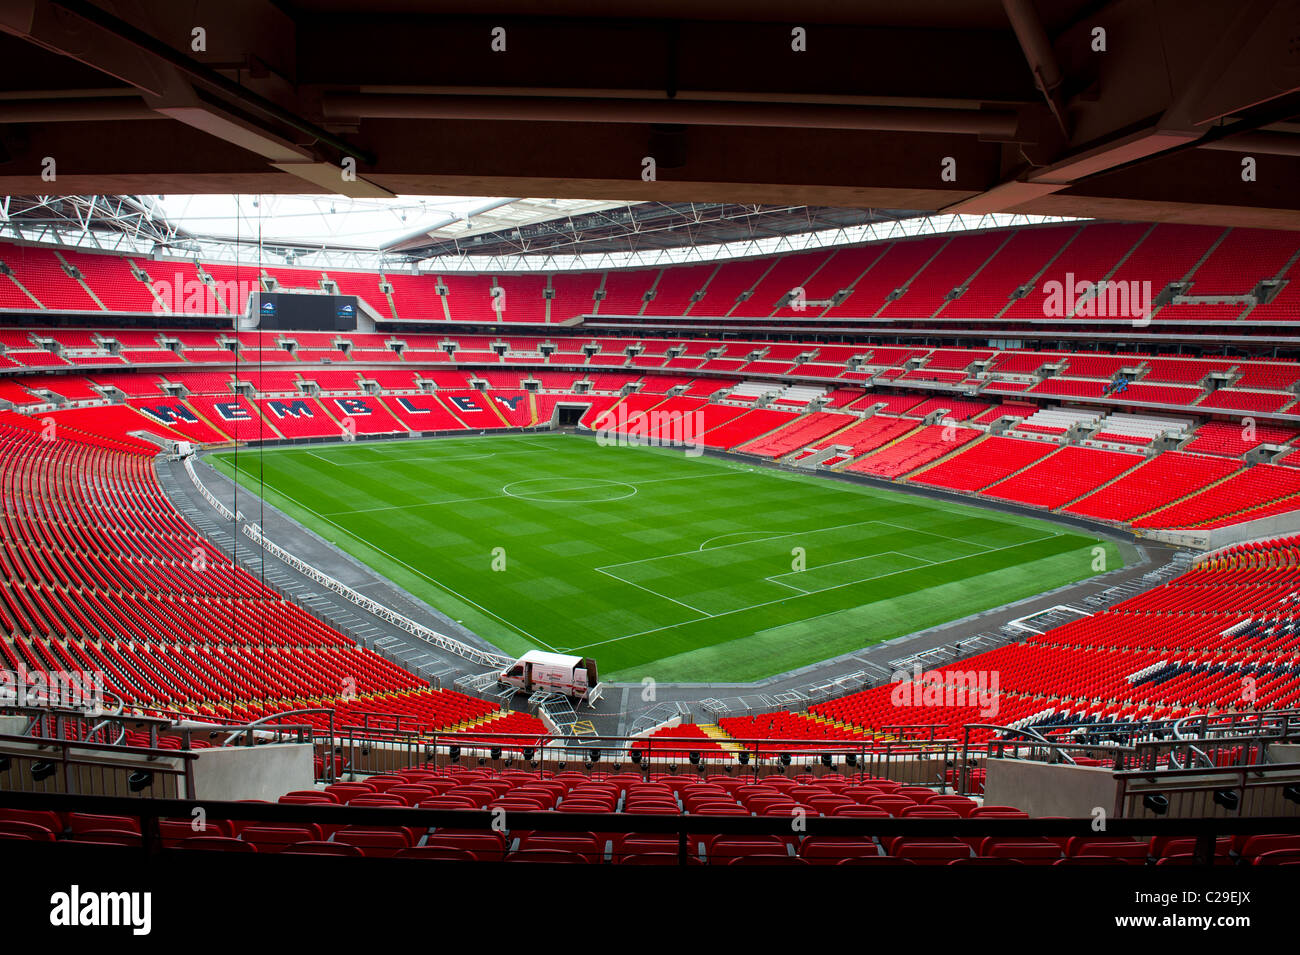 Wembley football stadium empty - Stock Image